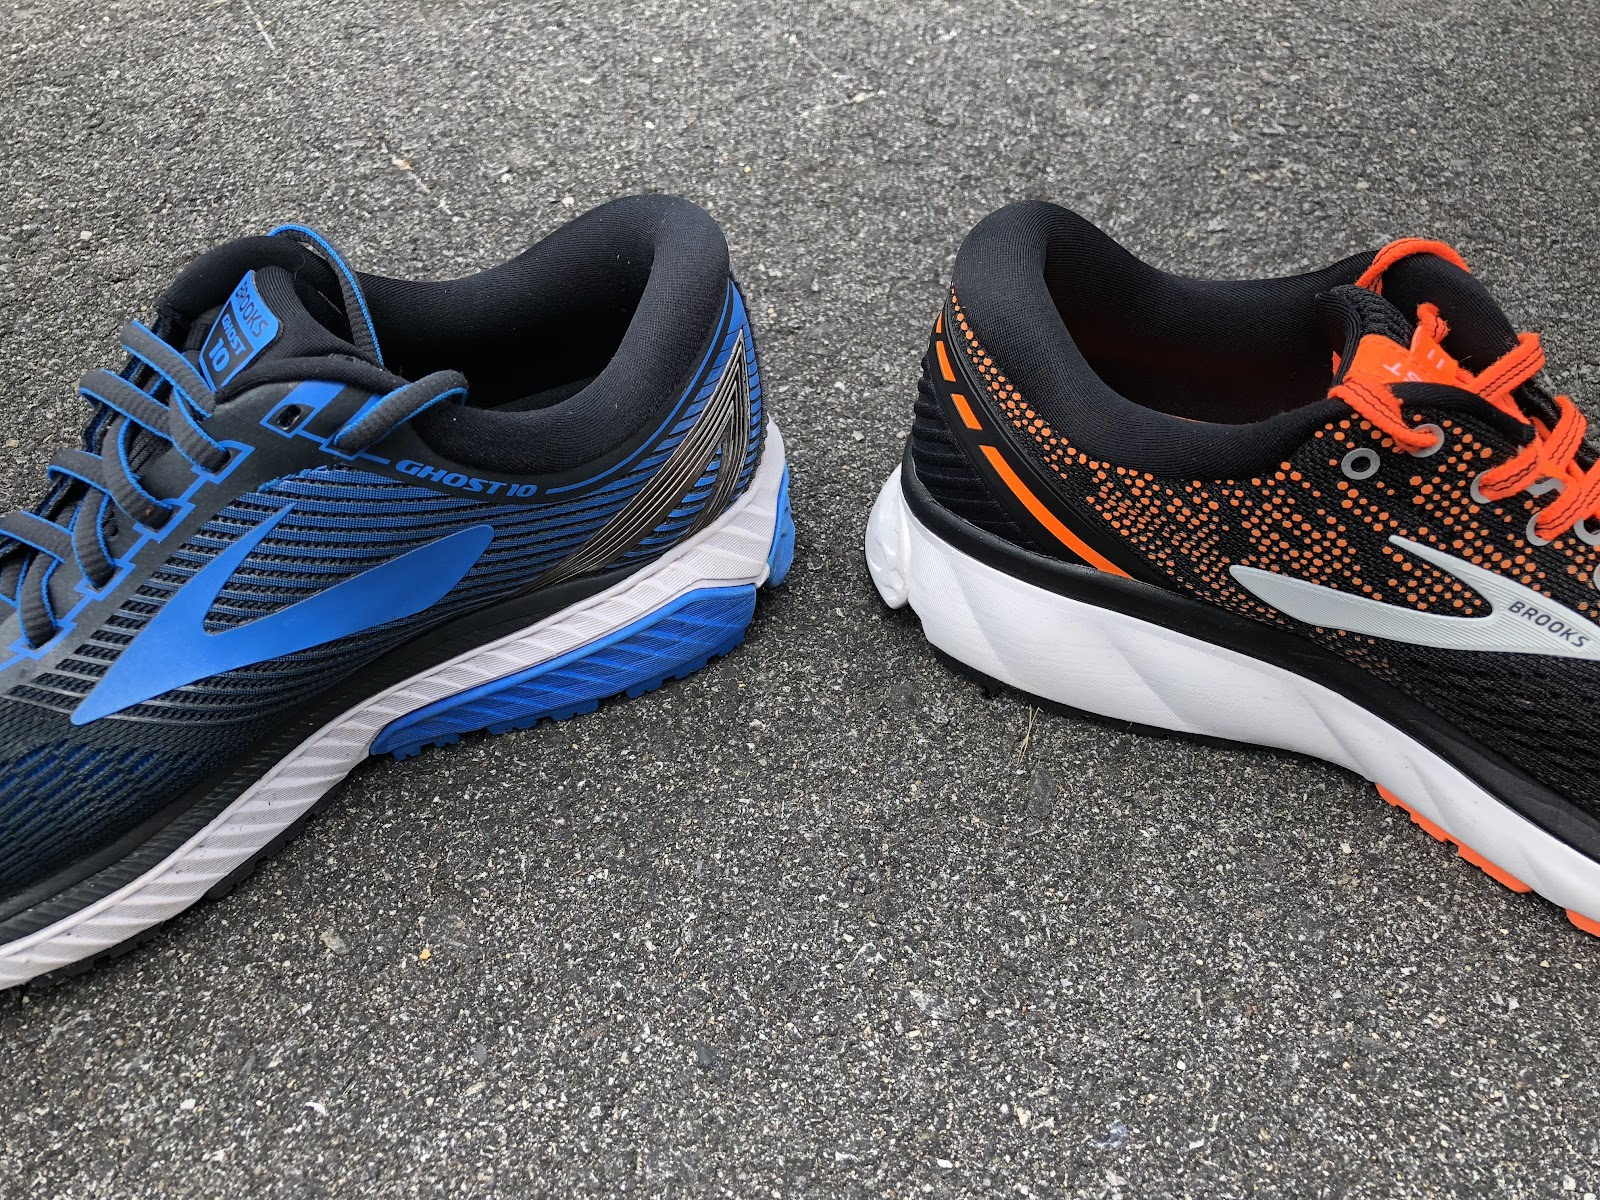 e29fbf46112 Road Trail Run  Brooks Running Ghost 11 Review  Top to Bottom ...